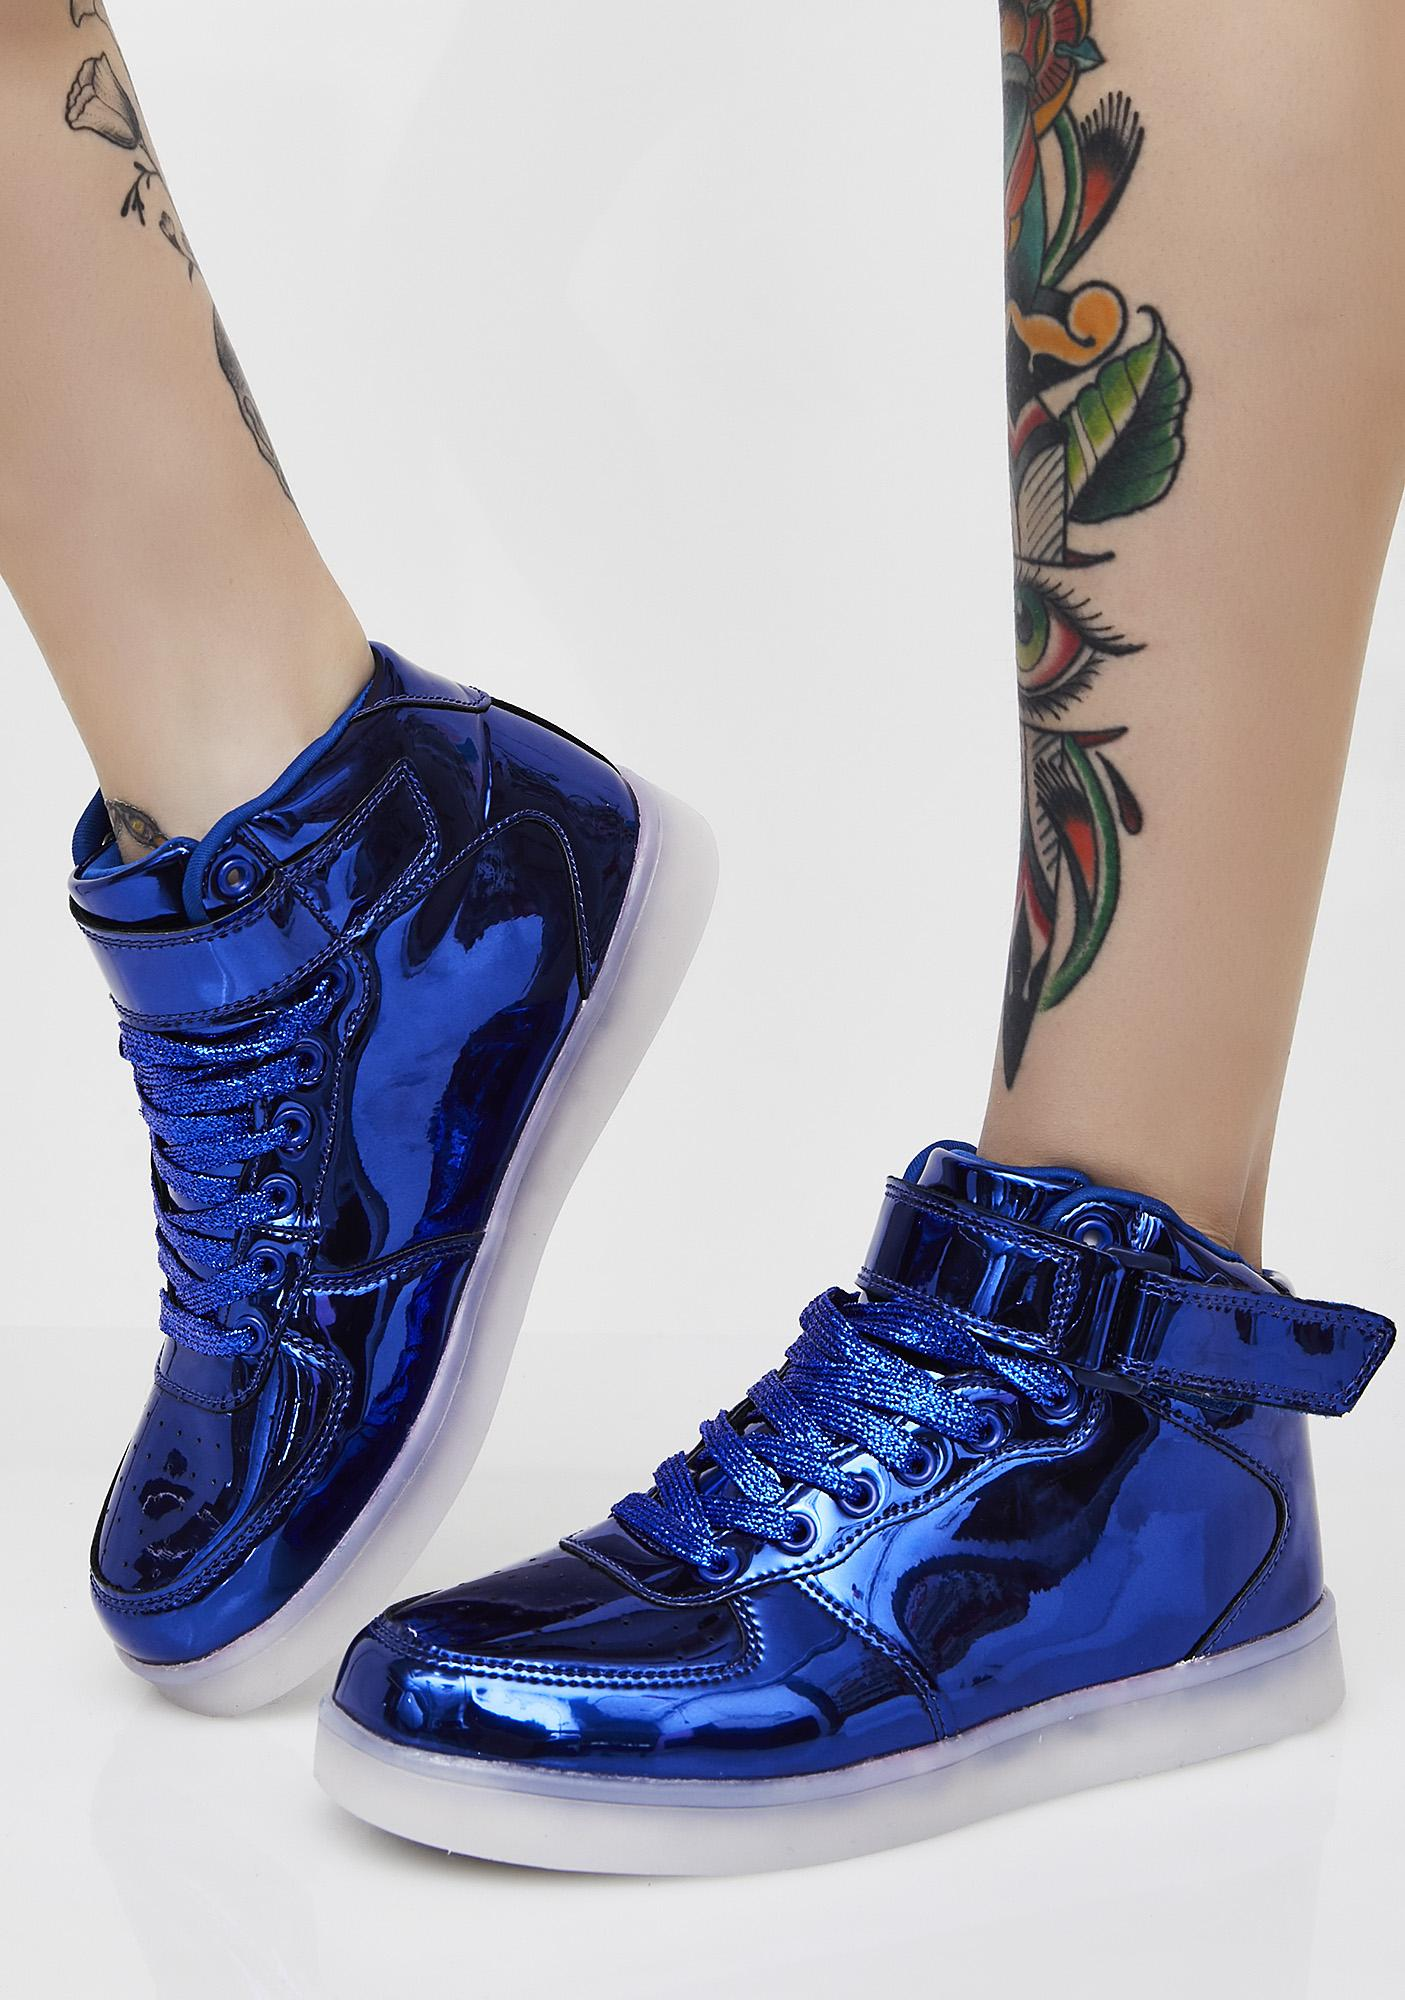 Sapphire Chrome Invader Light Up Sneakers